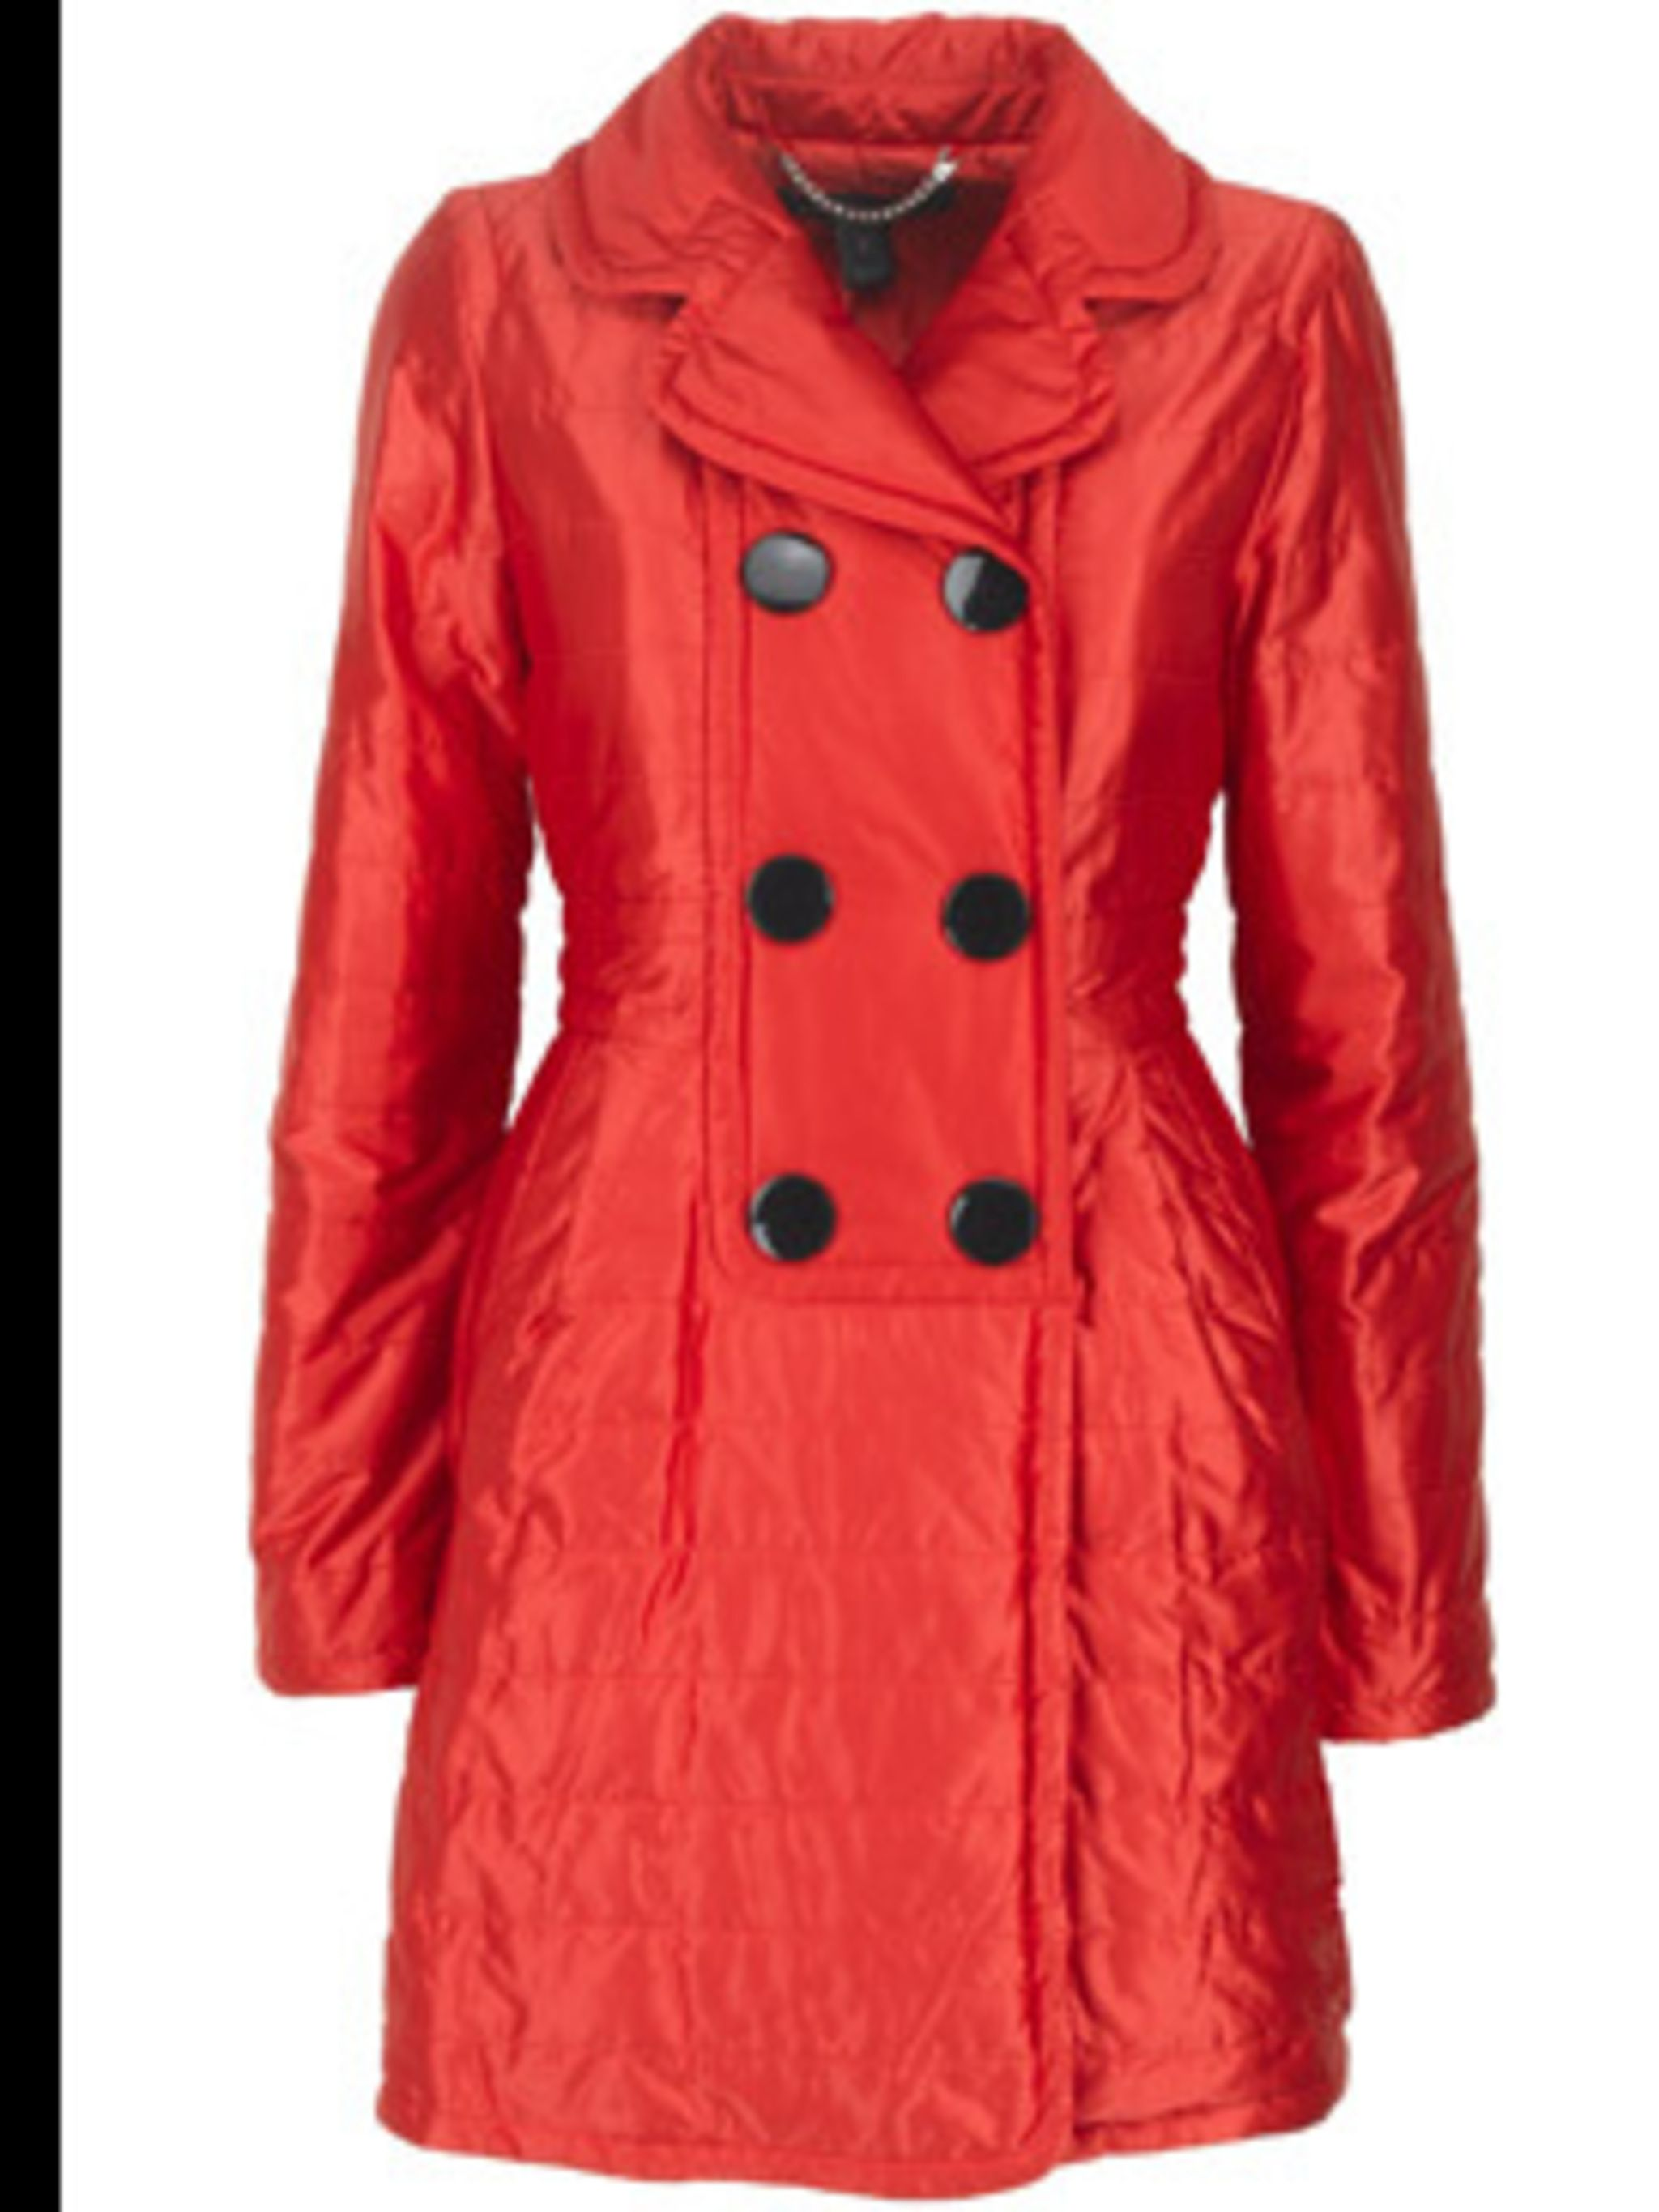 <p>Red satin puff coat £385 by Marc by Marc Jacobs, available from Selfridges 0800 123 400</p>